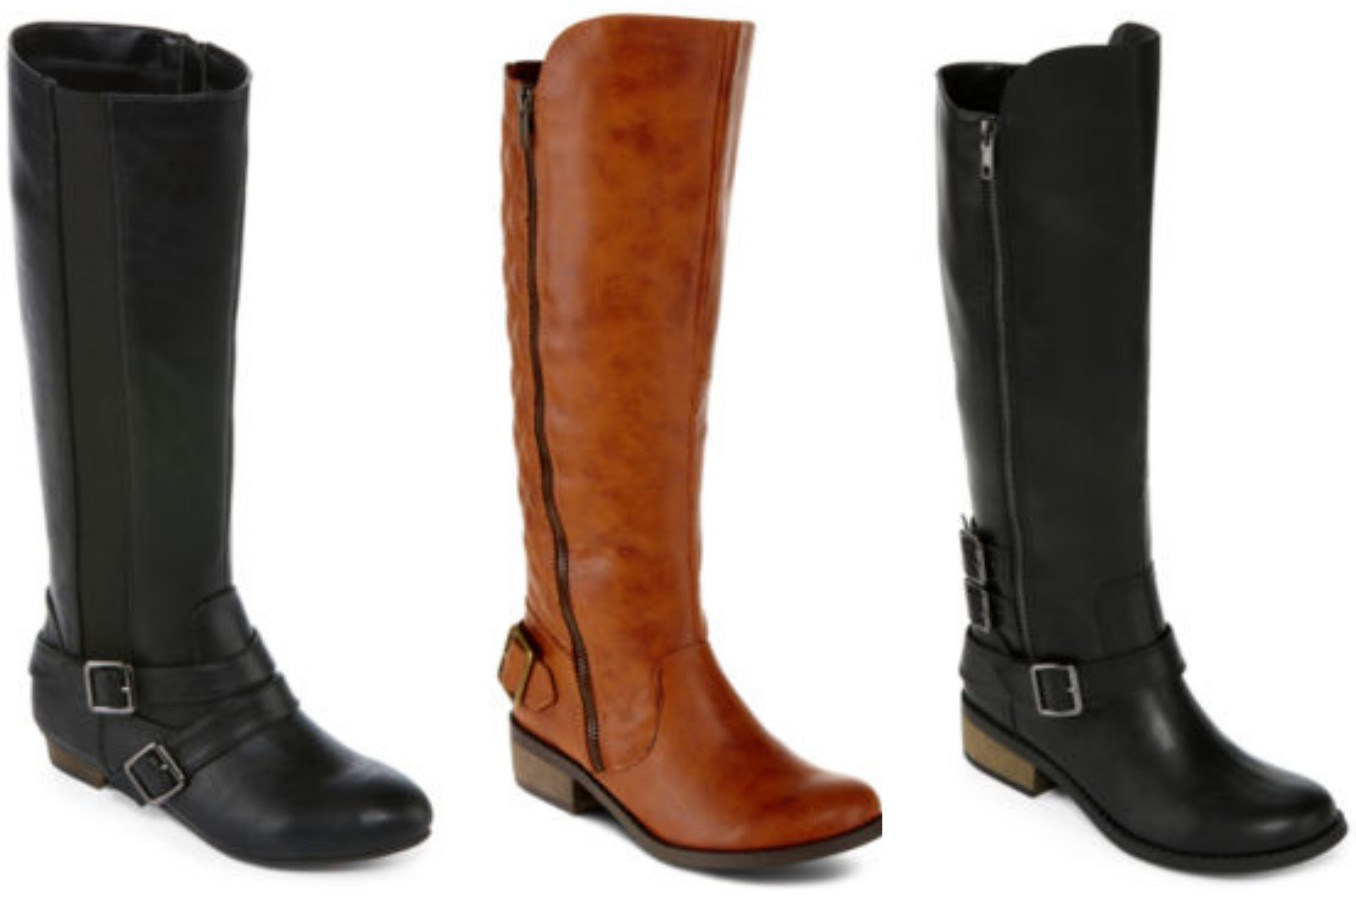 jcpenney women s boots only 15 99 reg 90 more